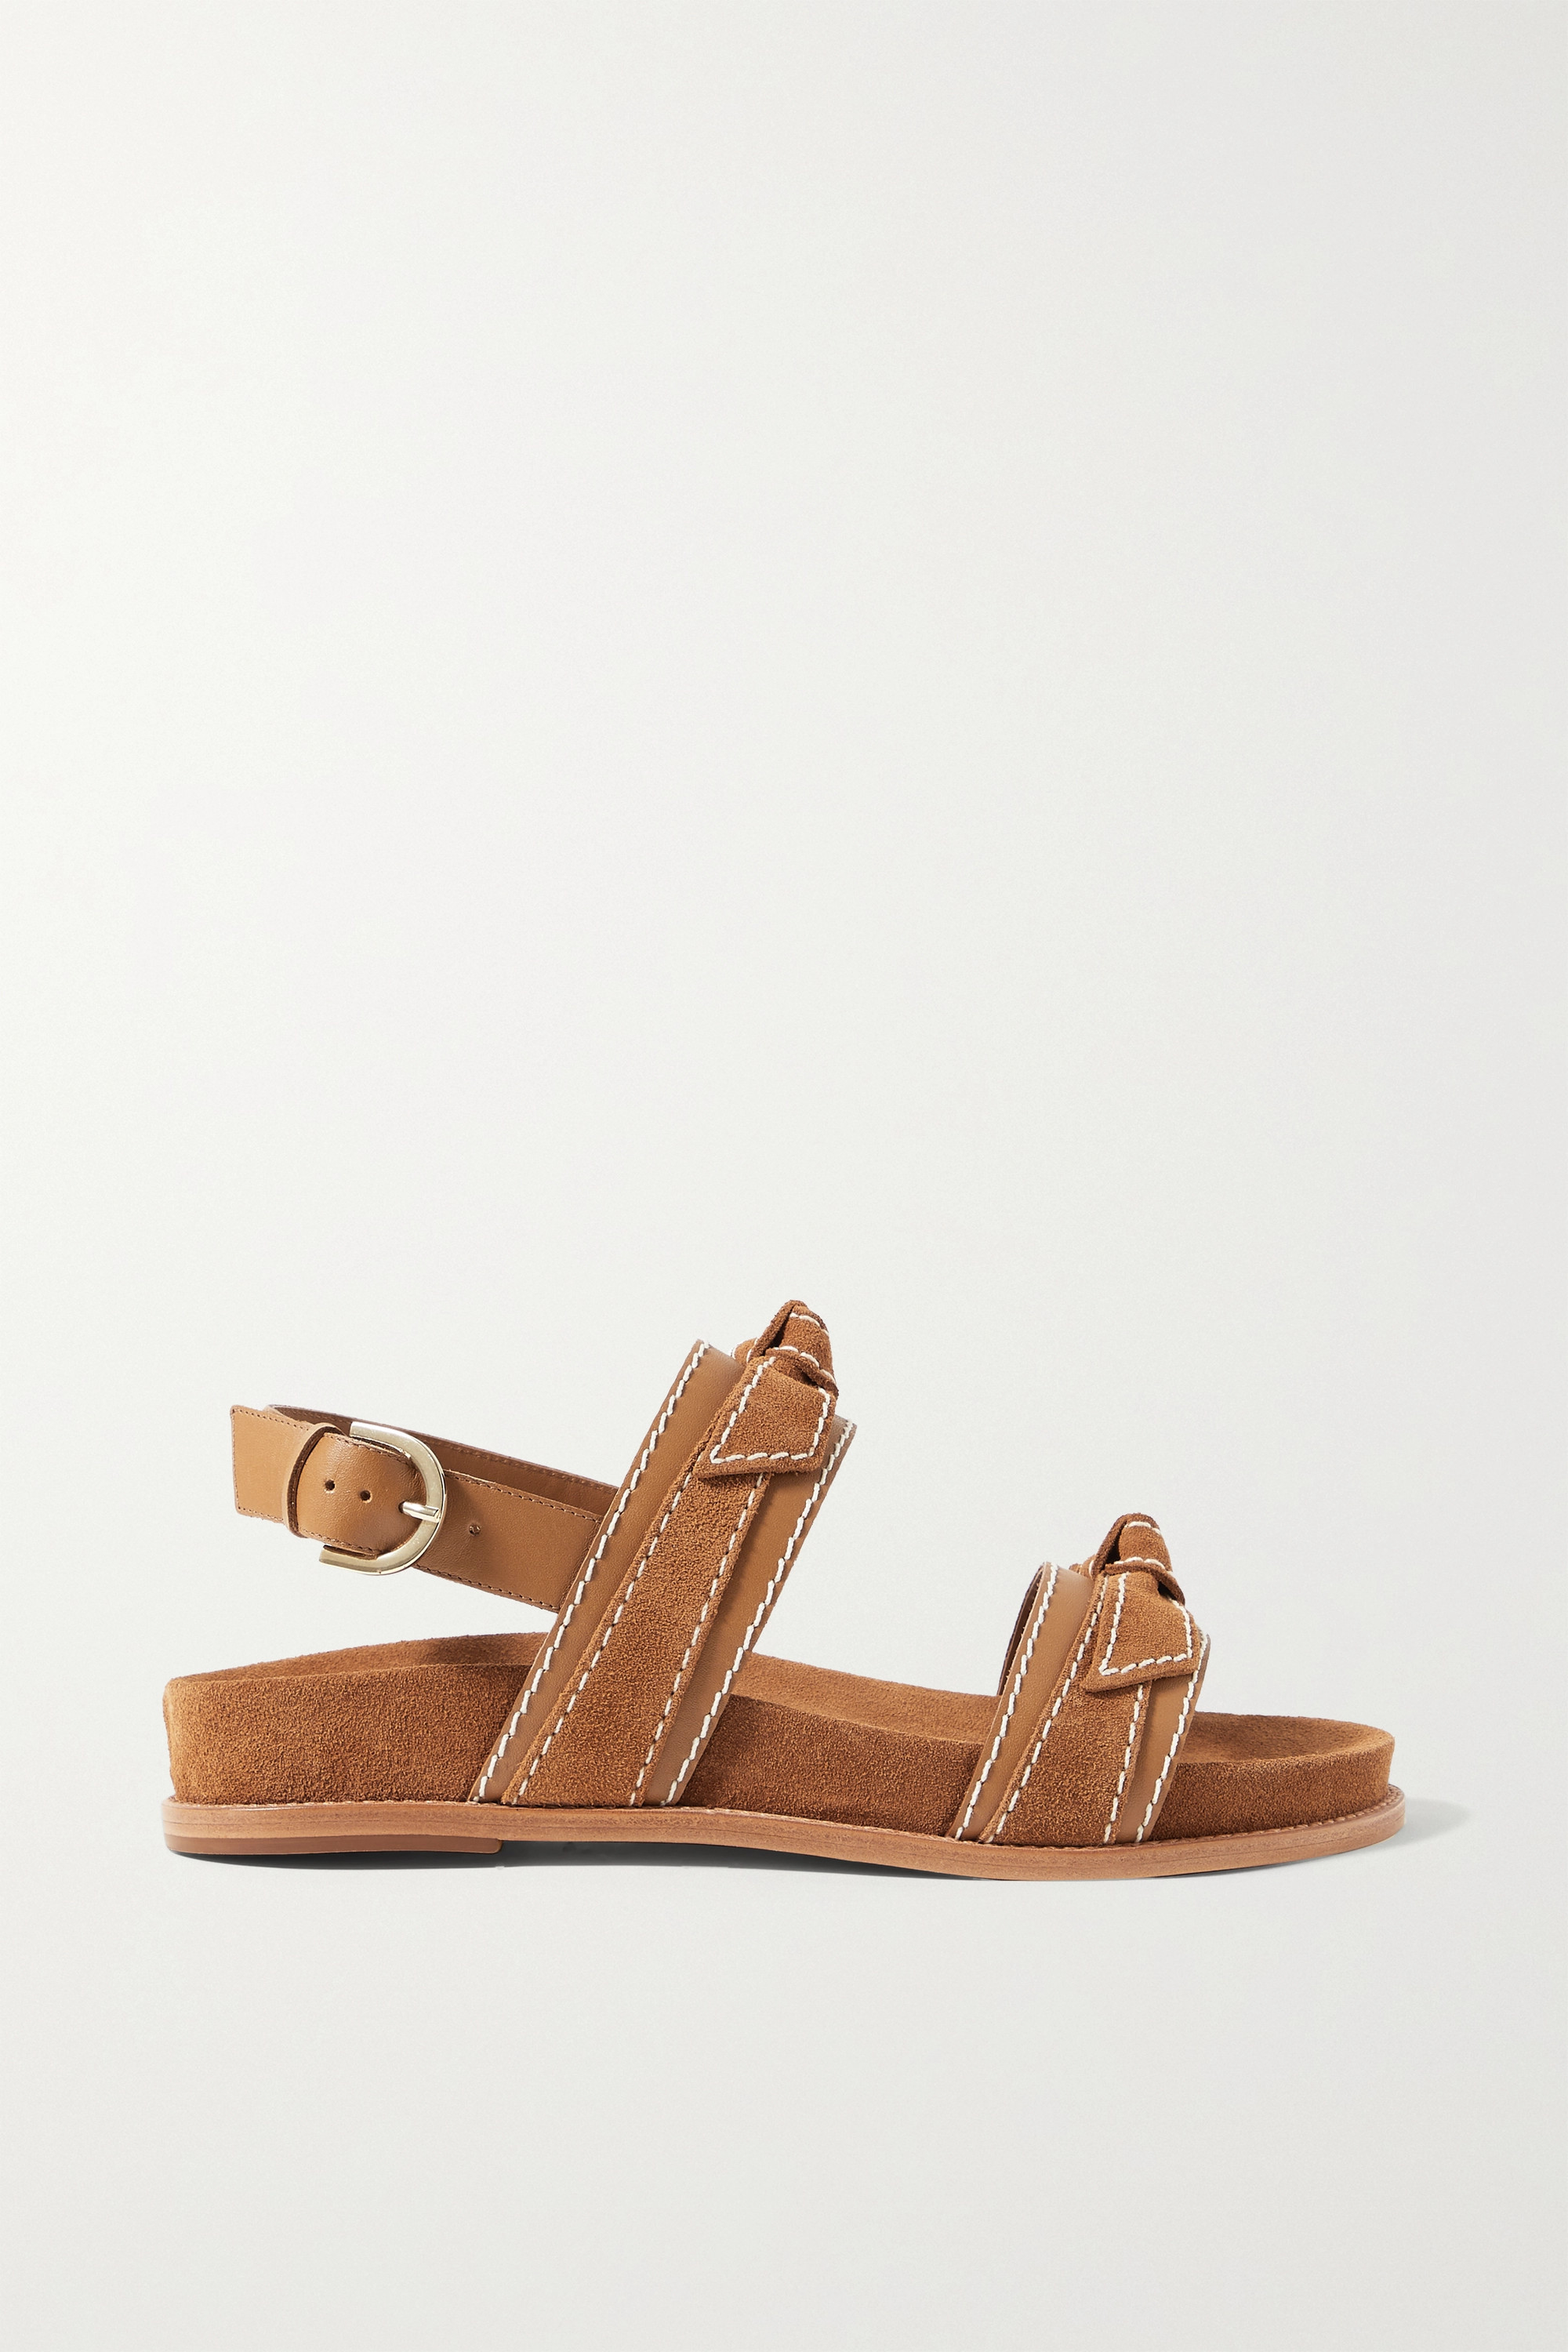 ALEXANDRE BIRMAN Clarita Sport bow-embellished suede and leather sandals